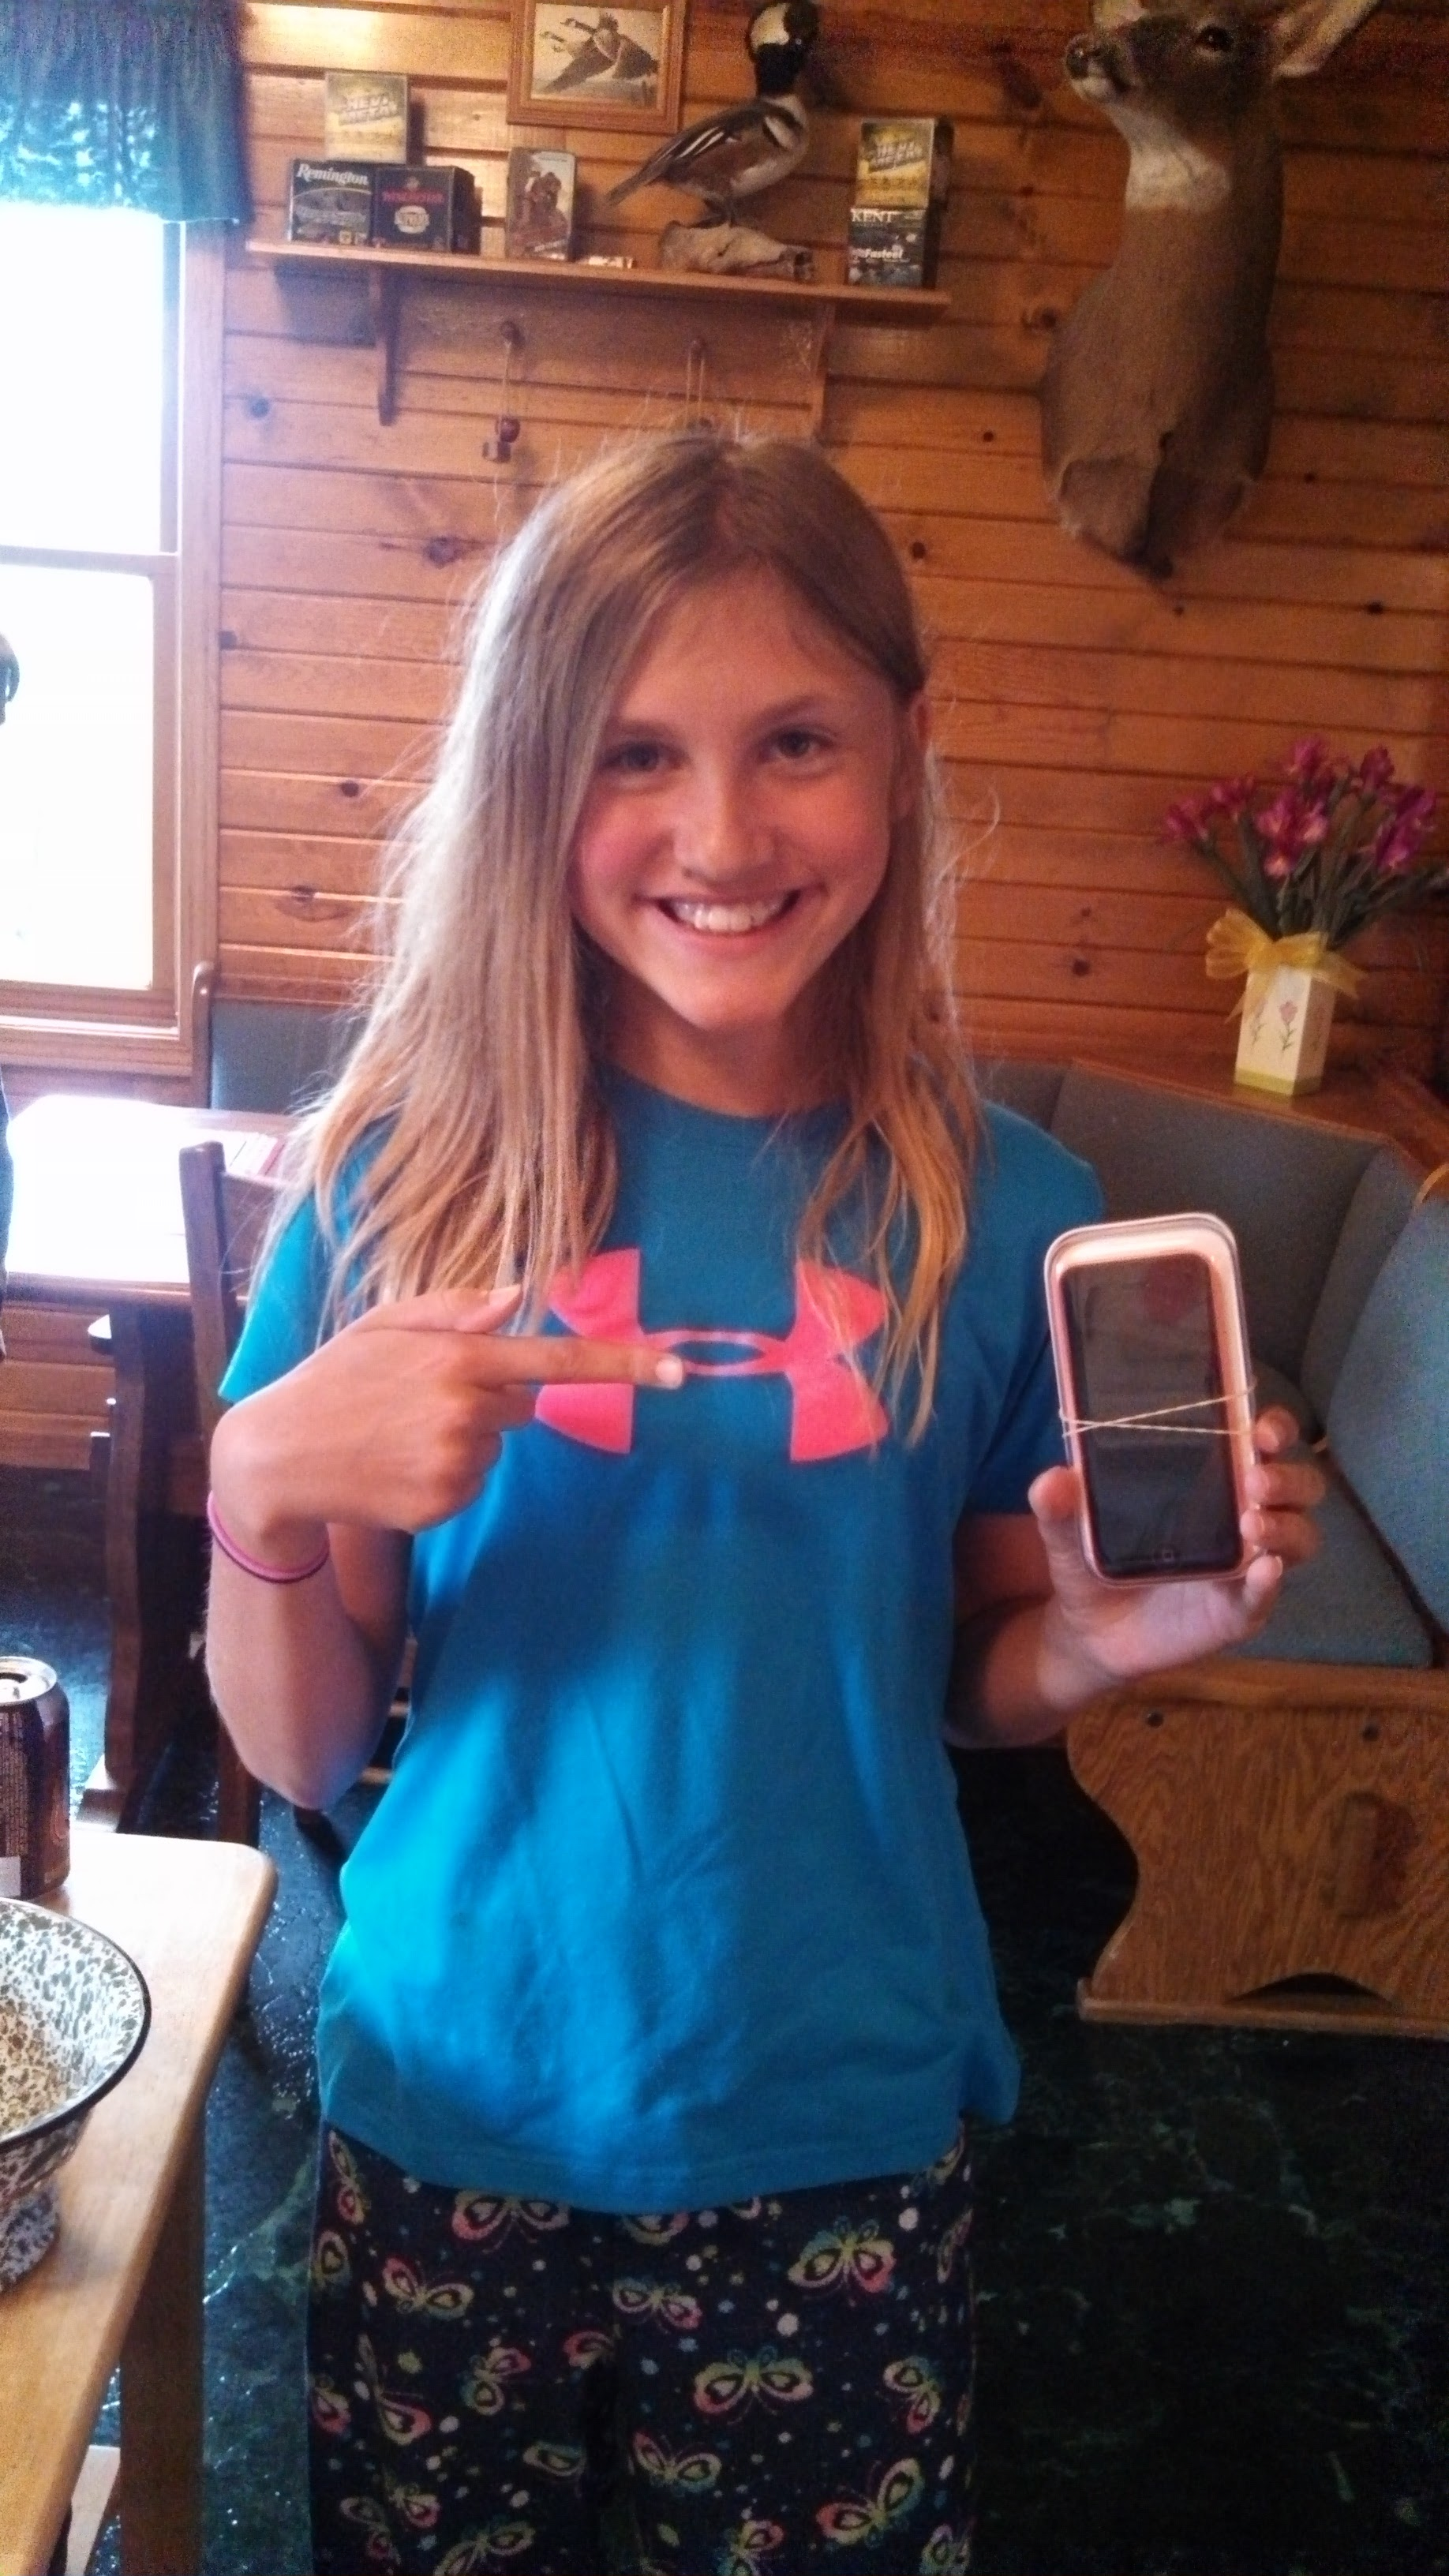 my first phone...the iPhone 5c—I was thrilled to get one in a coral color haha -